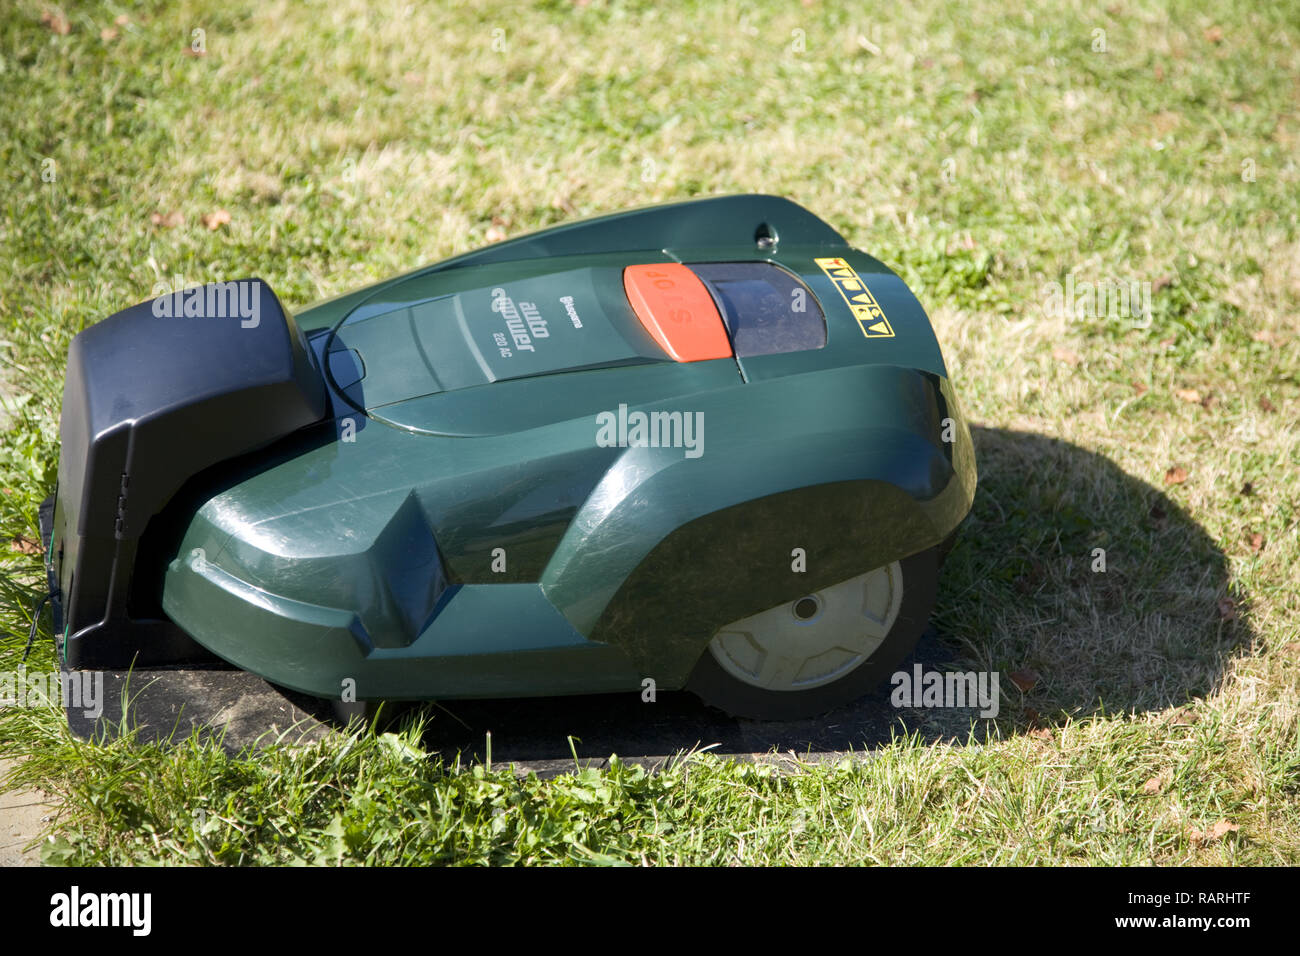 Green automatic robot lawnmower docked in its charging station, top view - Stock Image